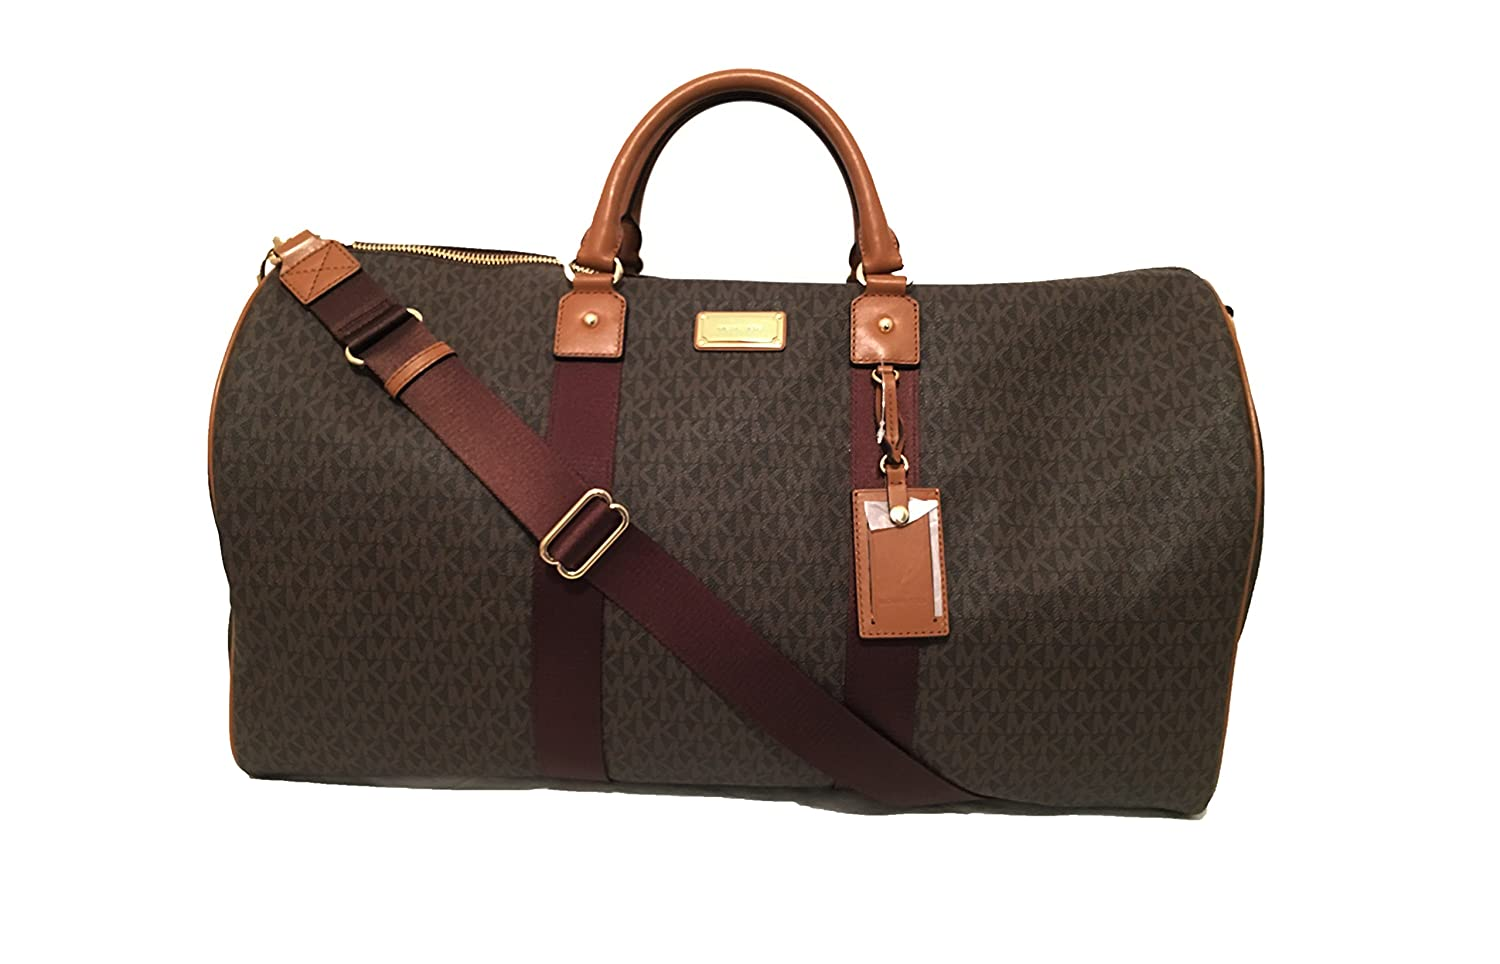 e8255b3ace8c5f Amazon.com: Michael Kors Michael Kors Leather Travel Logo Duffle Large Bag  Printed Duffel Luggage: Prestige World Fashion